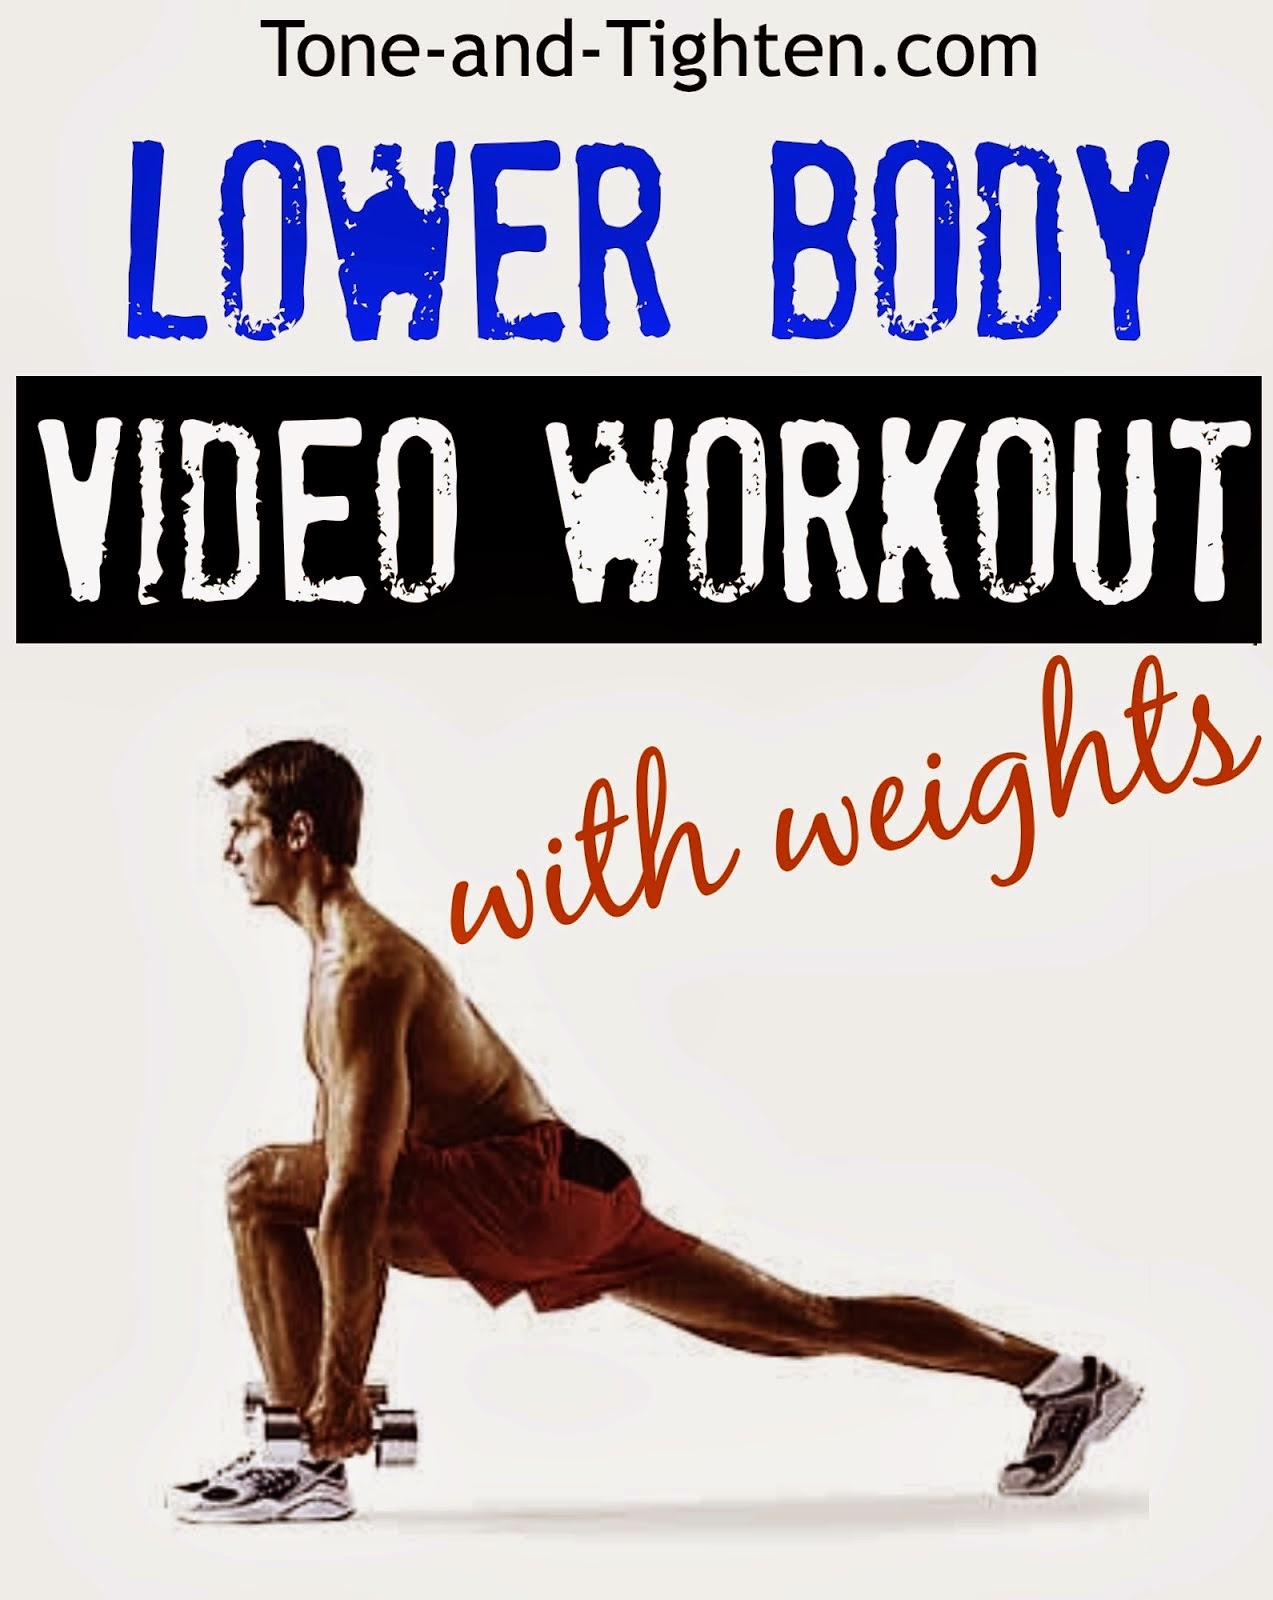 http://tone-and-tighten.com/2014/02/lower-body-video-workout-with-weights-strength-routine-at-its-finest.html